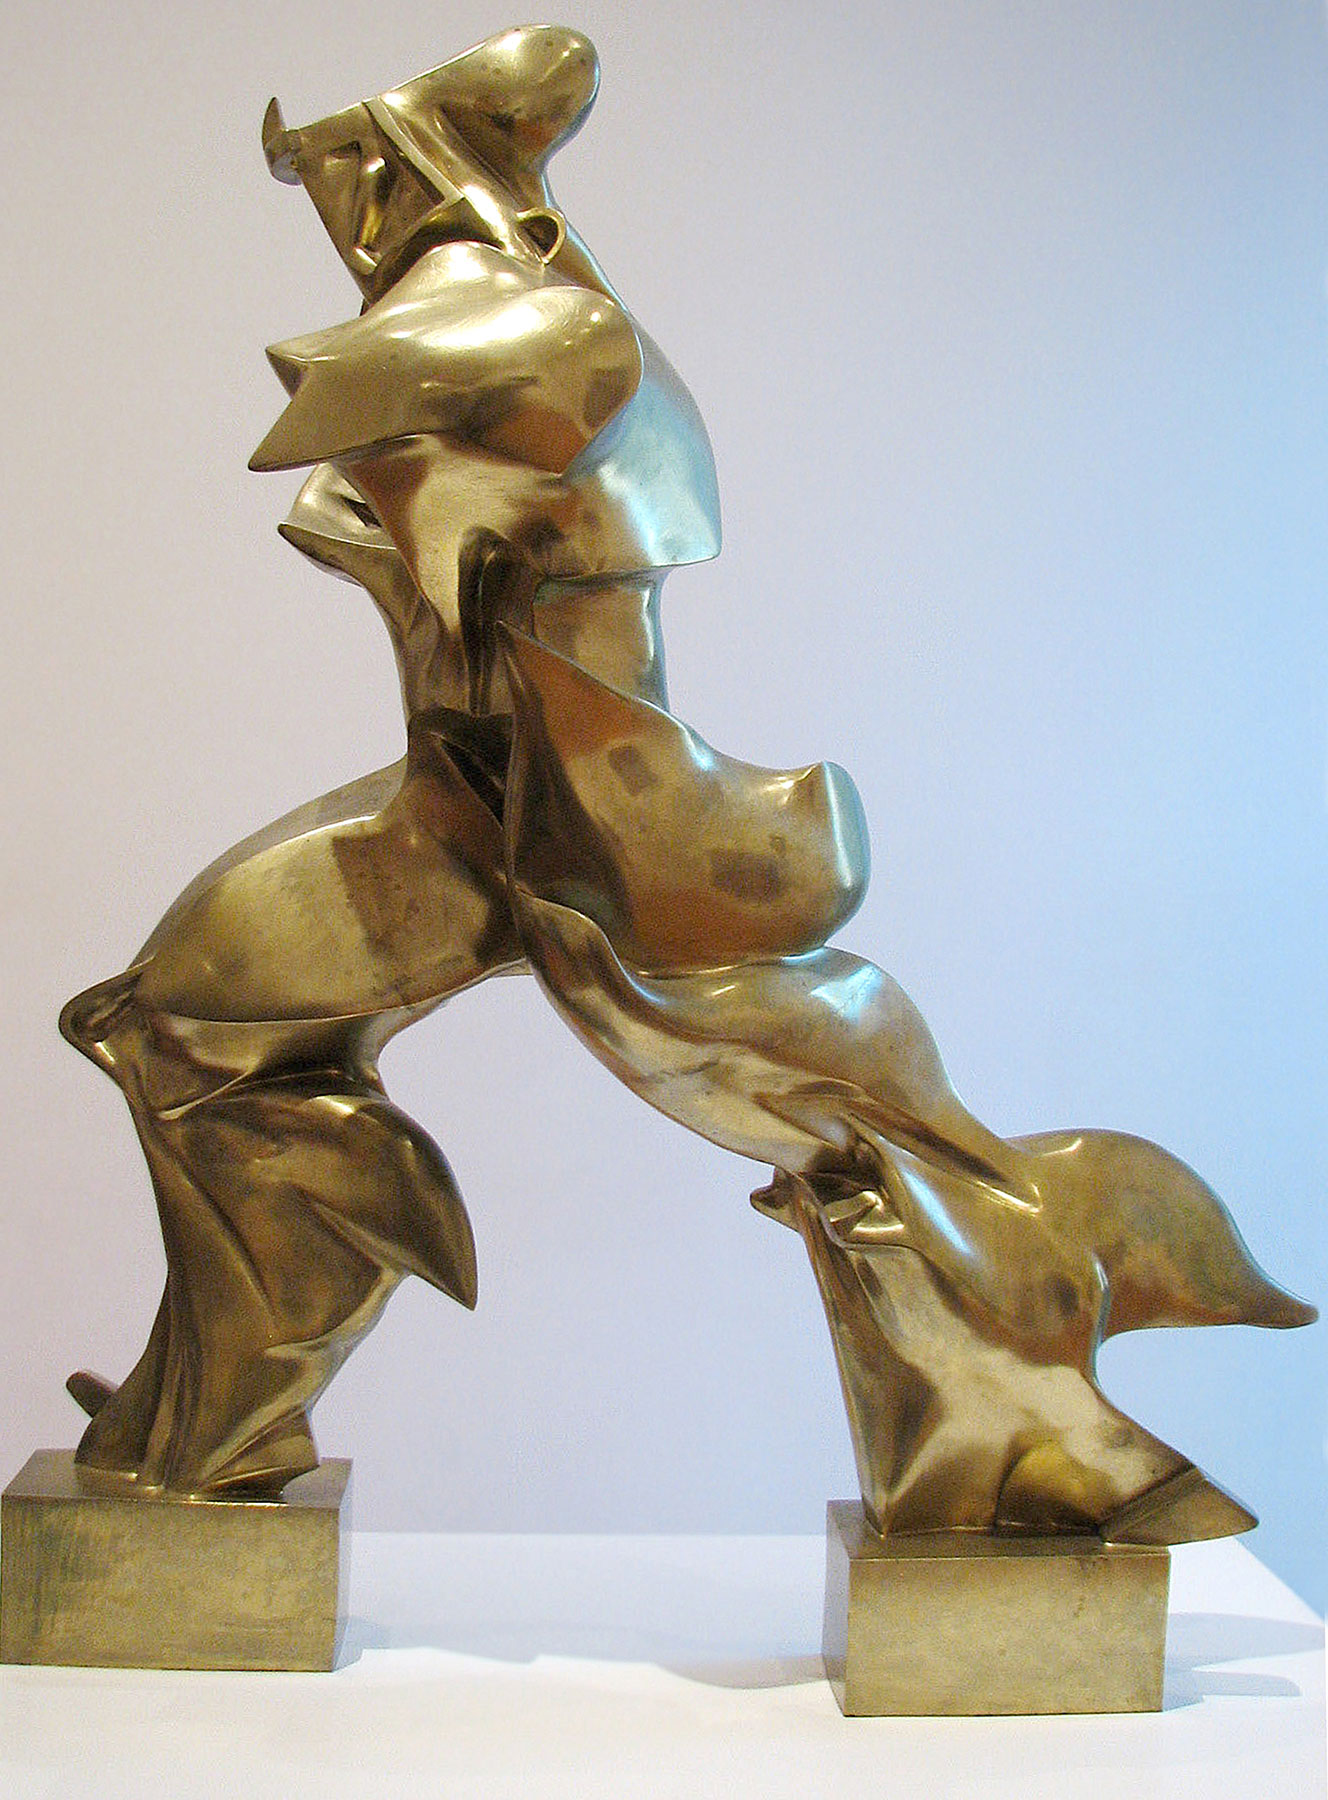 Continuity in Space by Umberto Boccioni